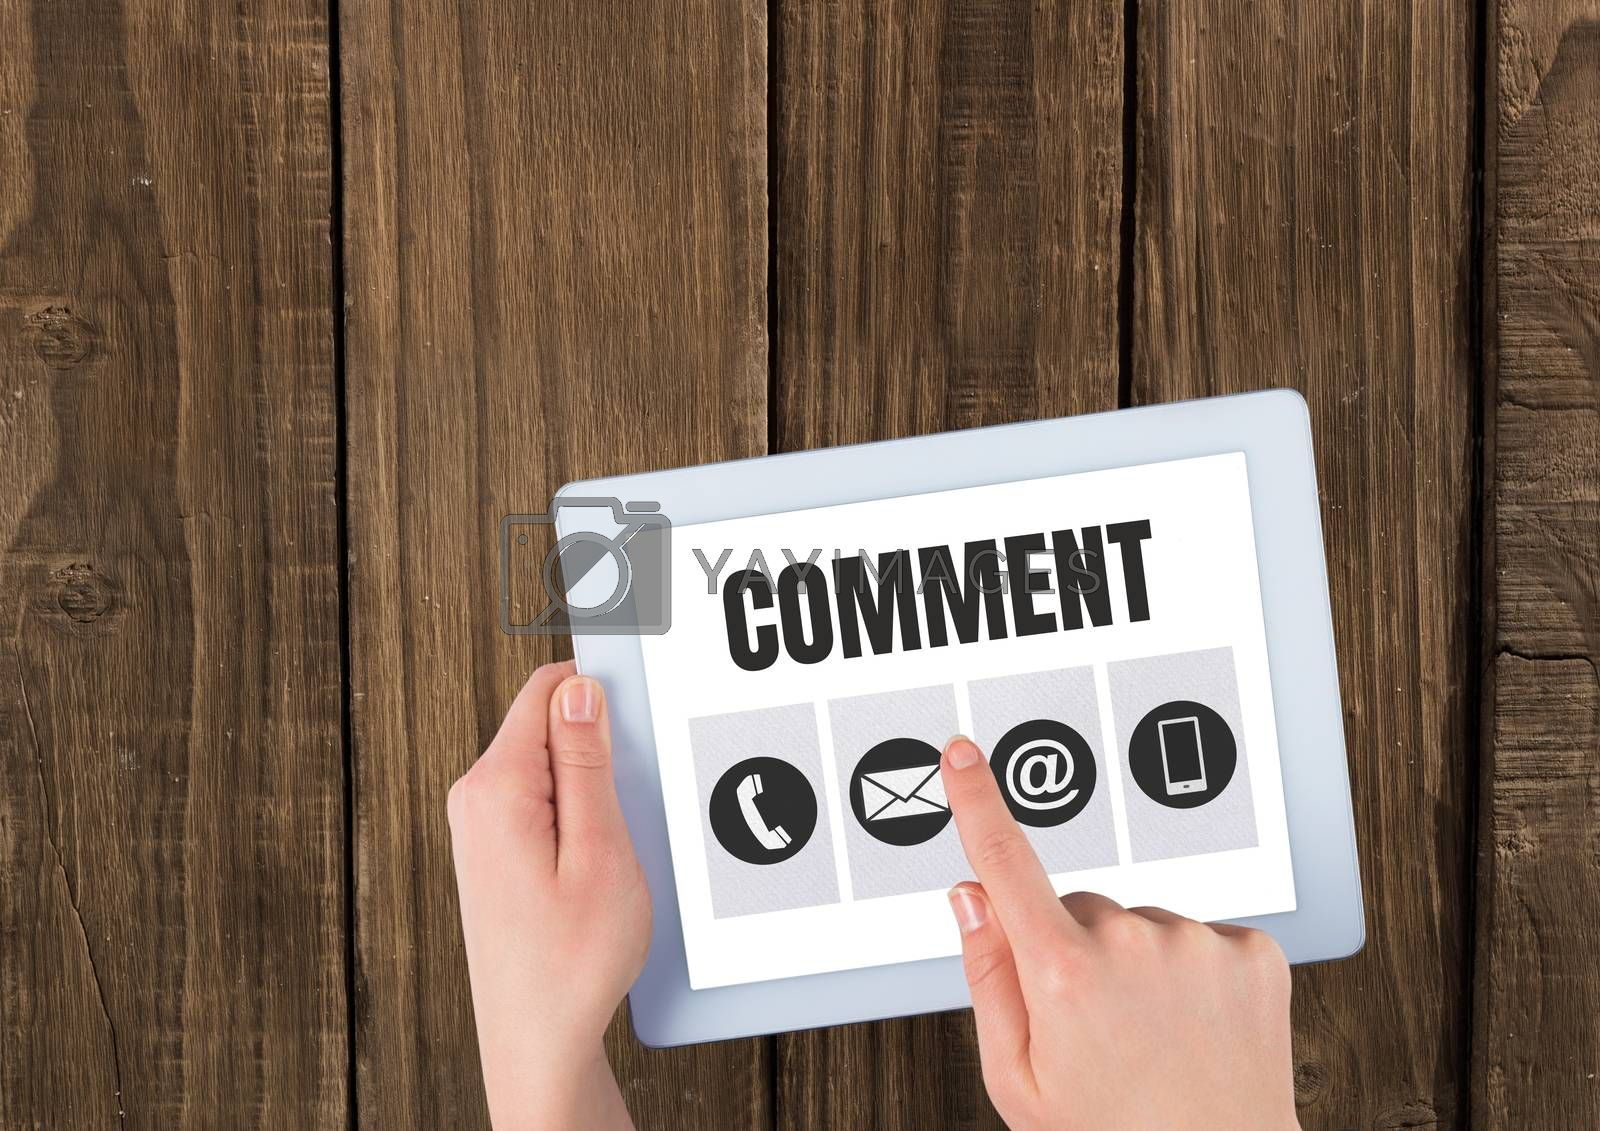 Comment text and graphic on tablet screen with hands by Wavebreakmedia